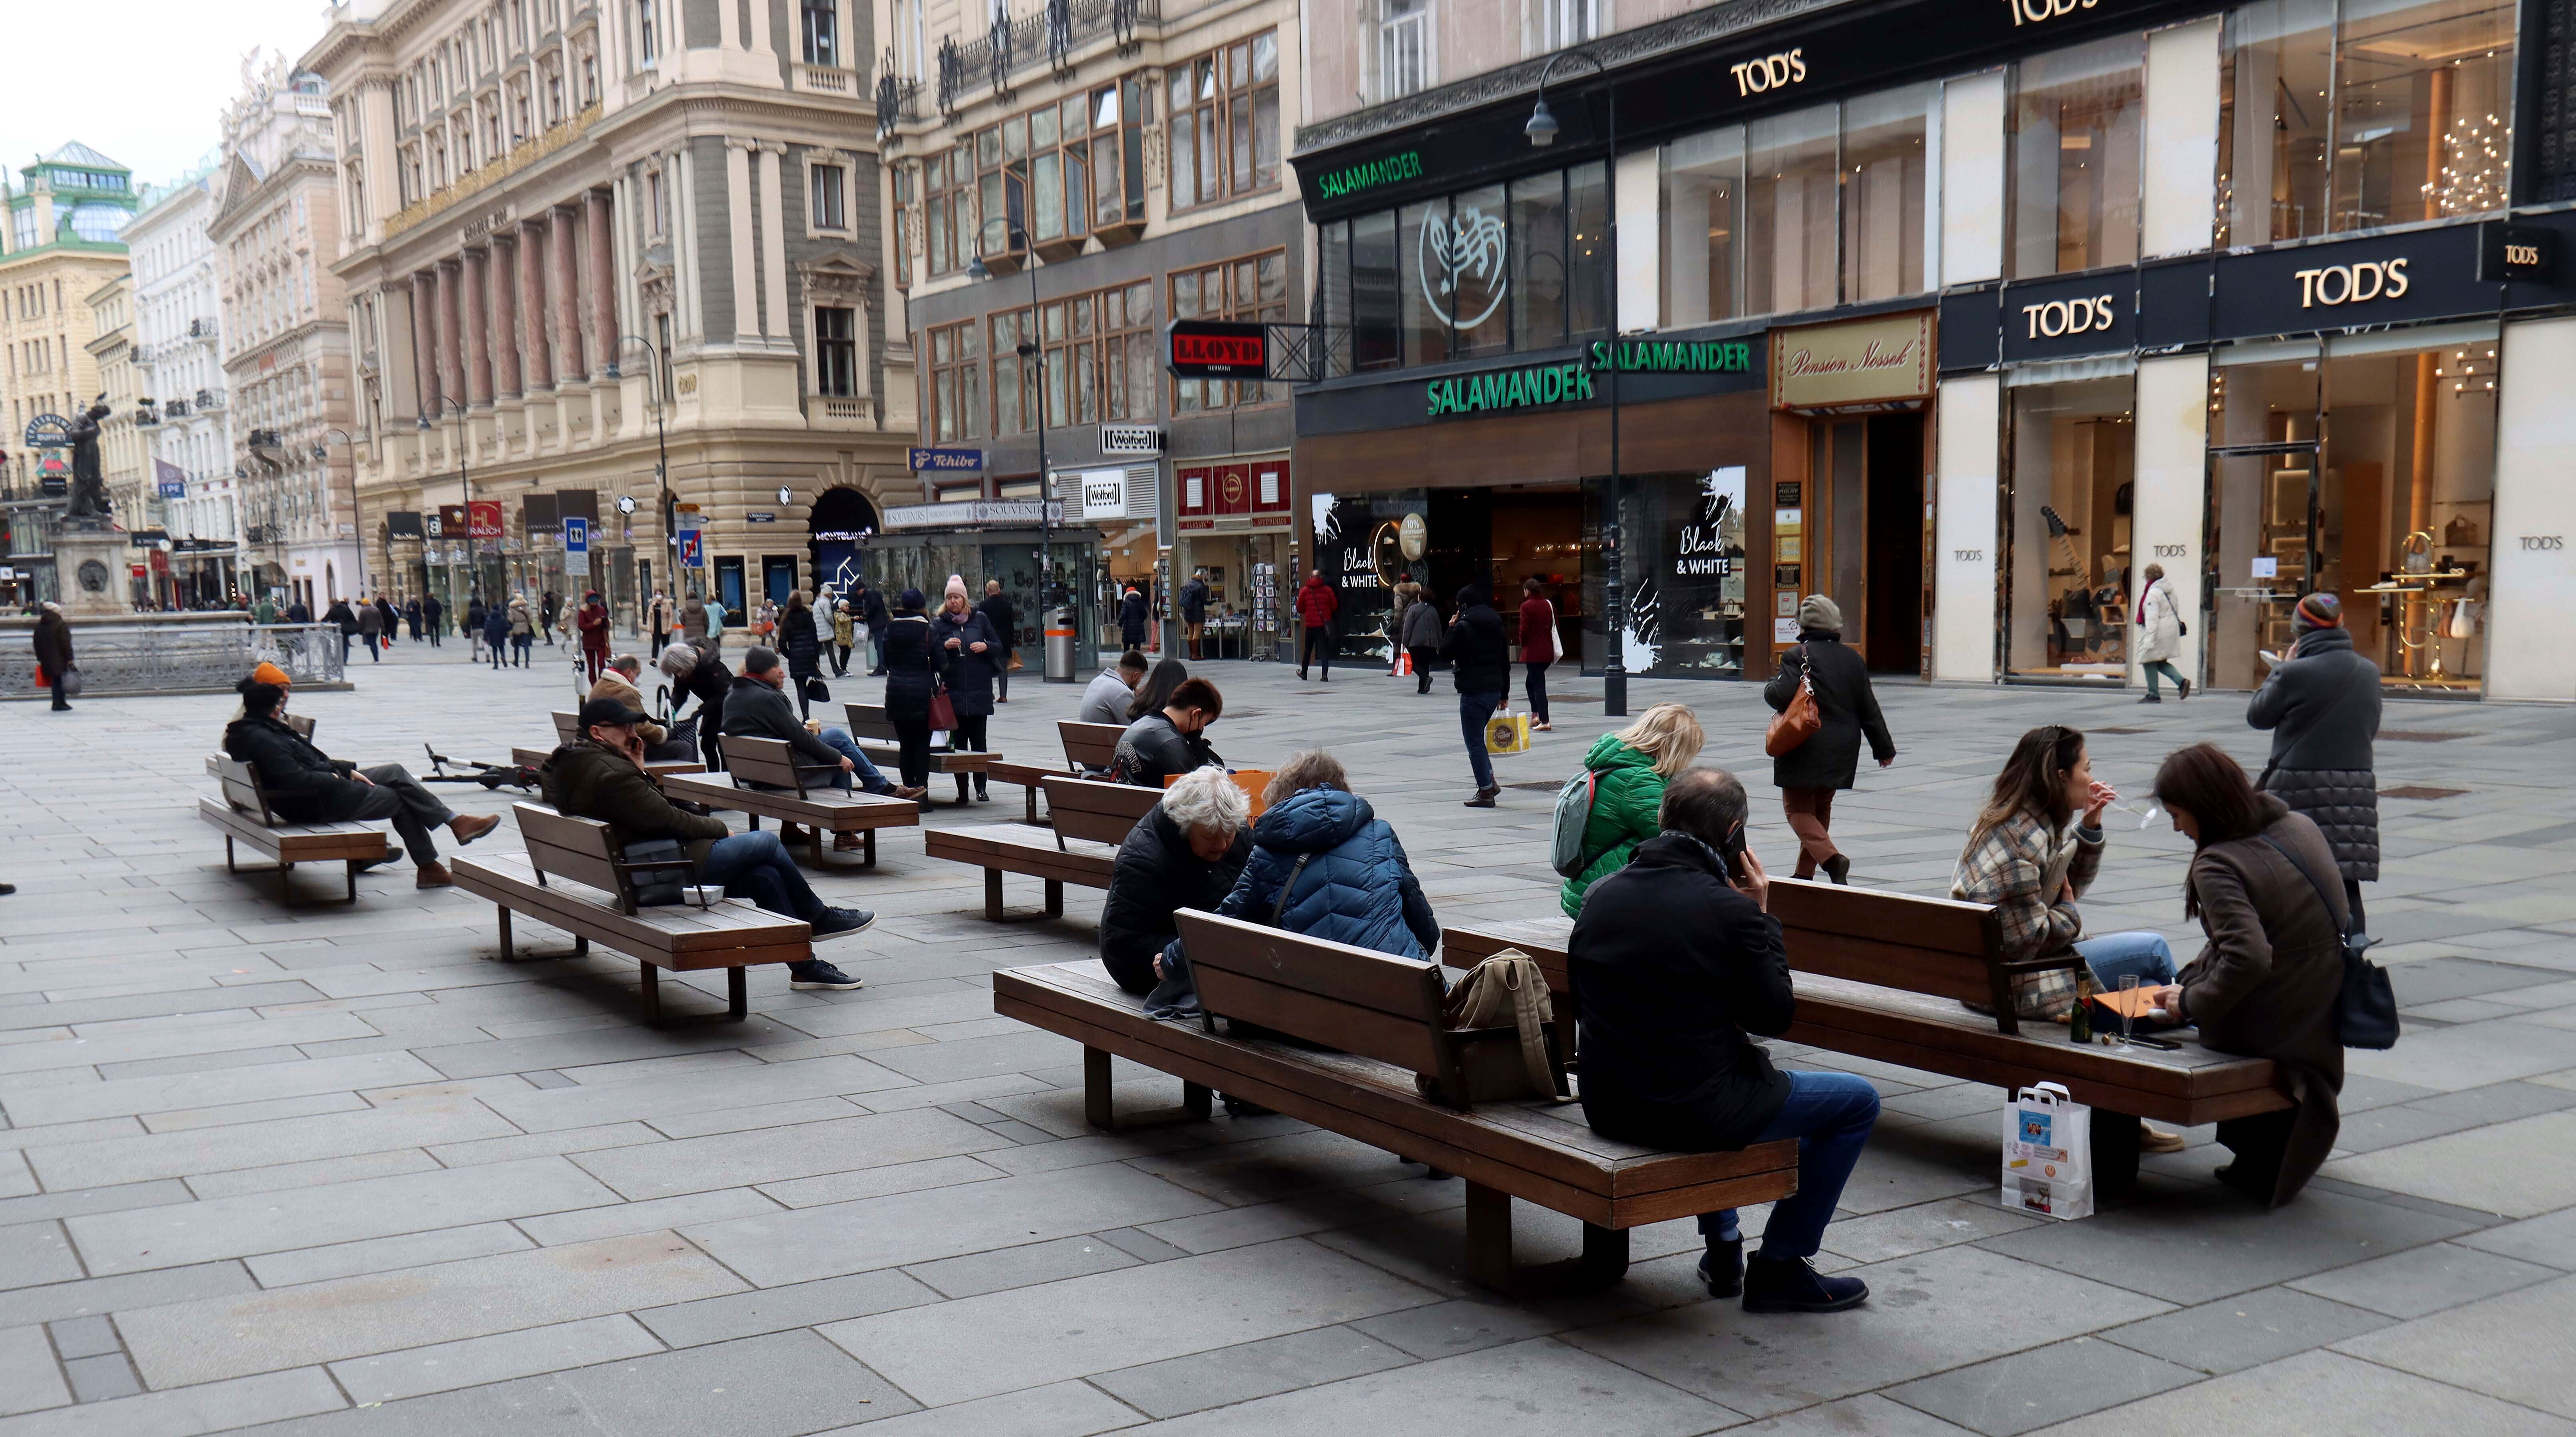 People sit on benches in downtown Vienna, Austria, on March 22.